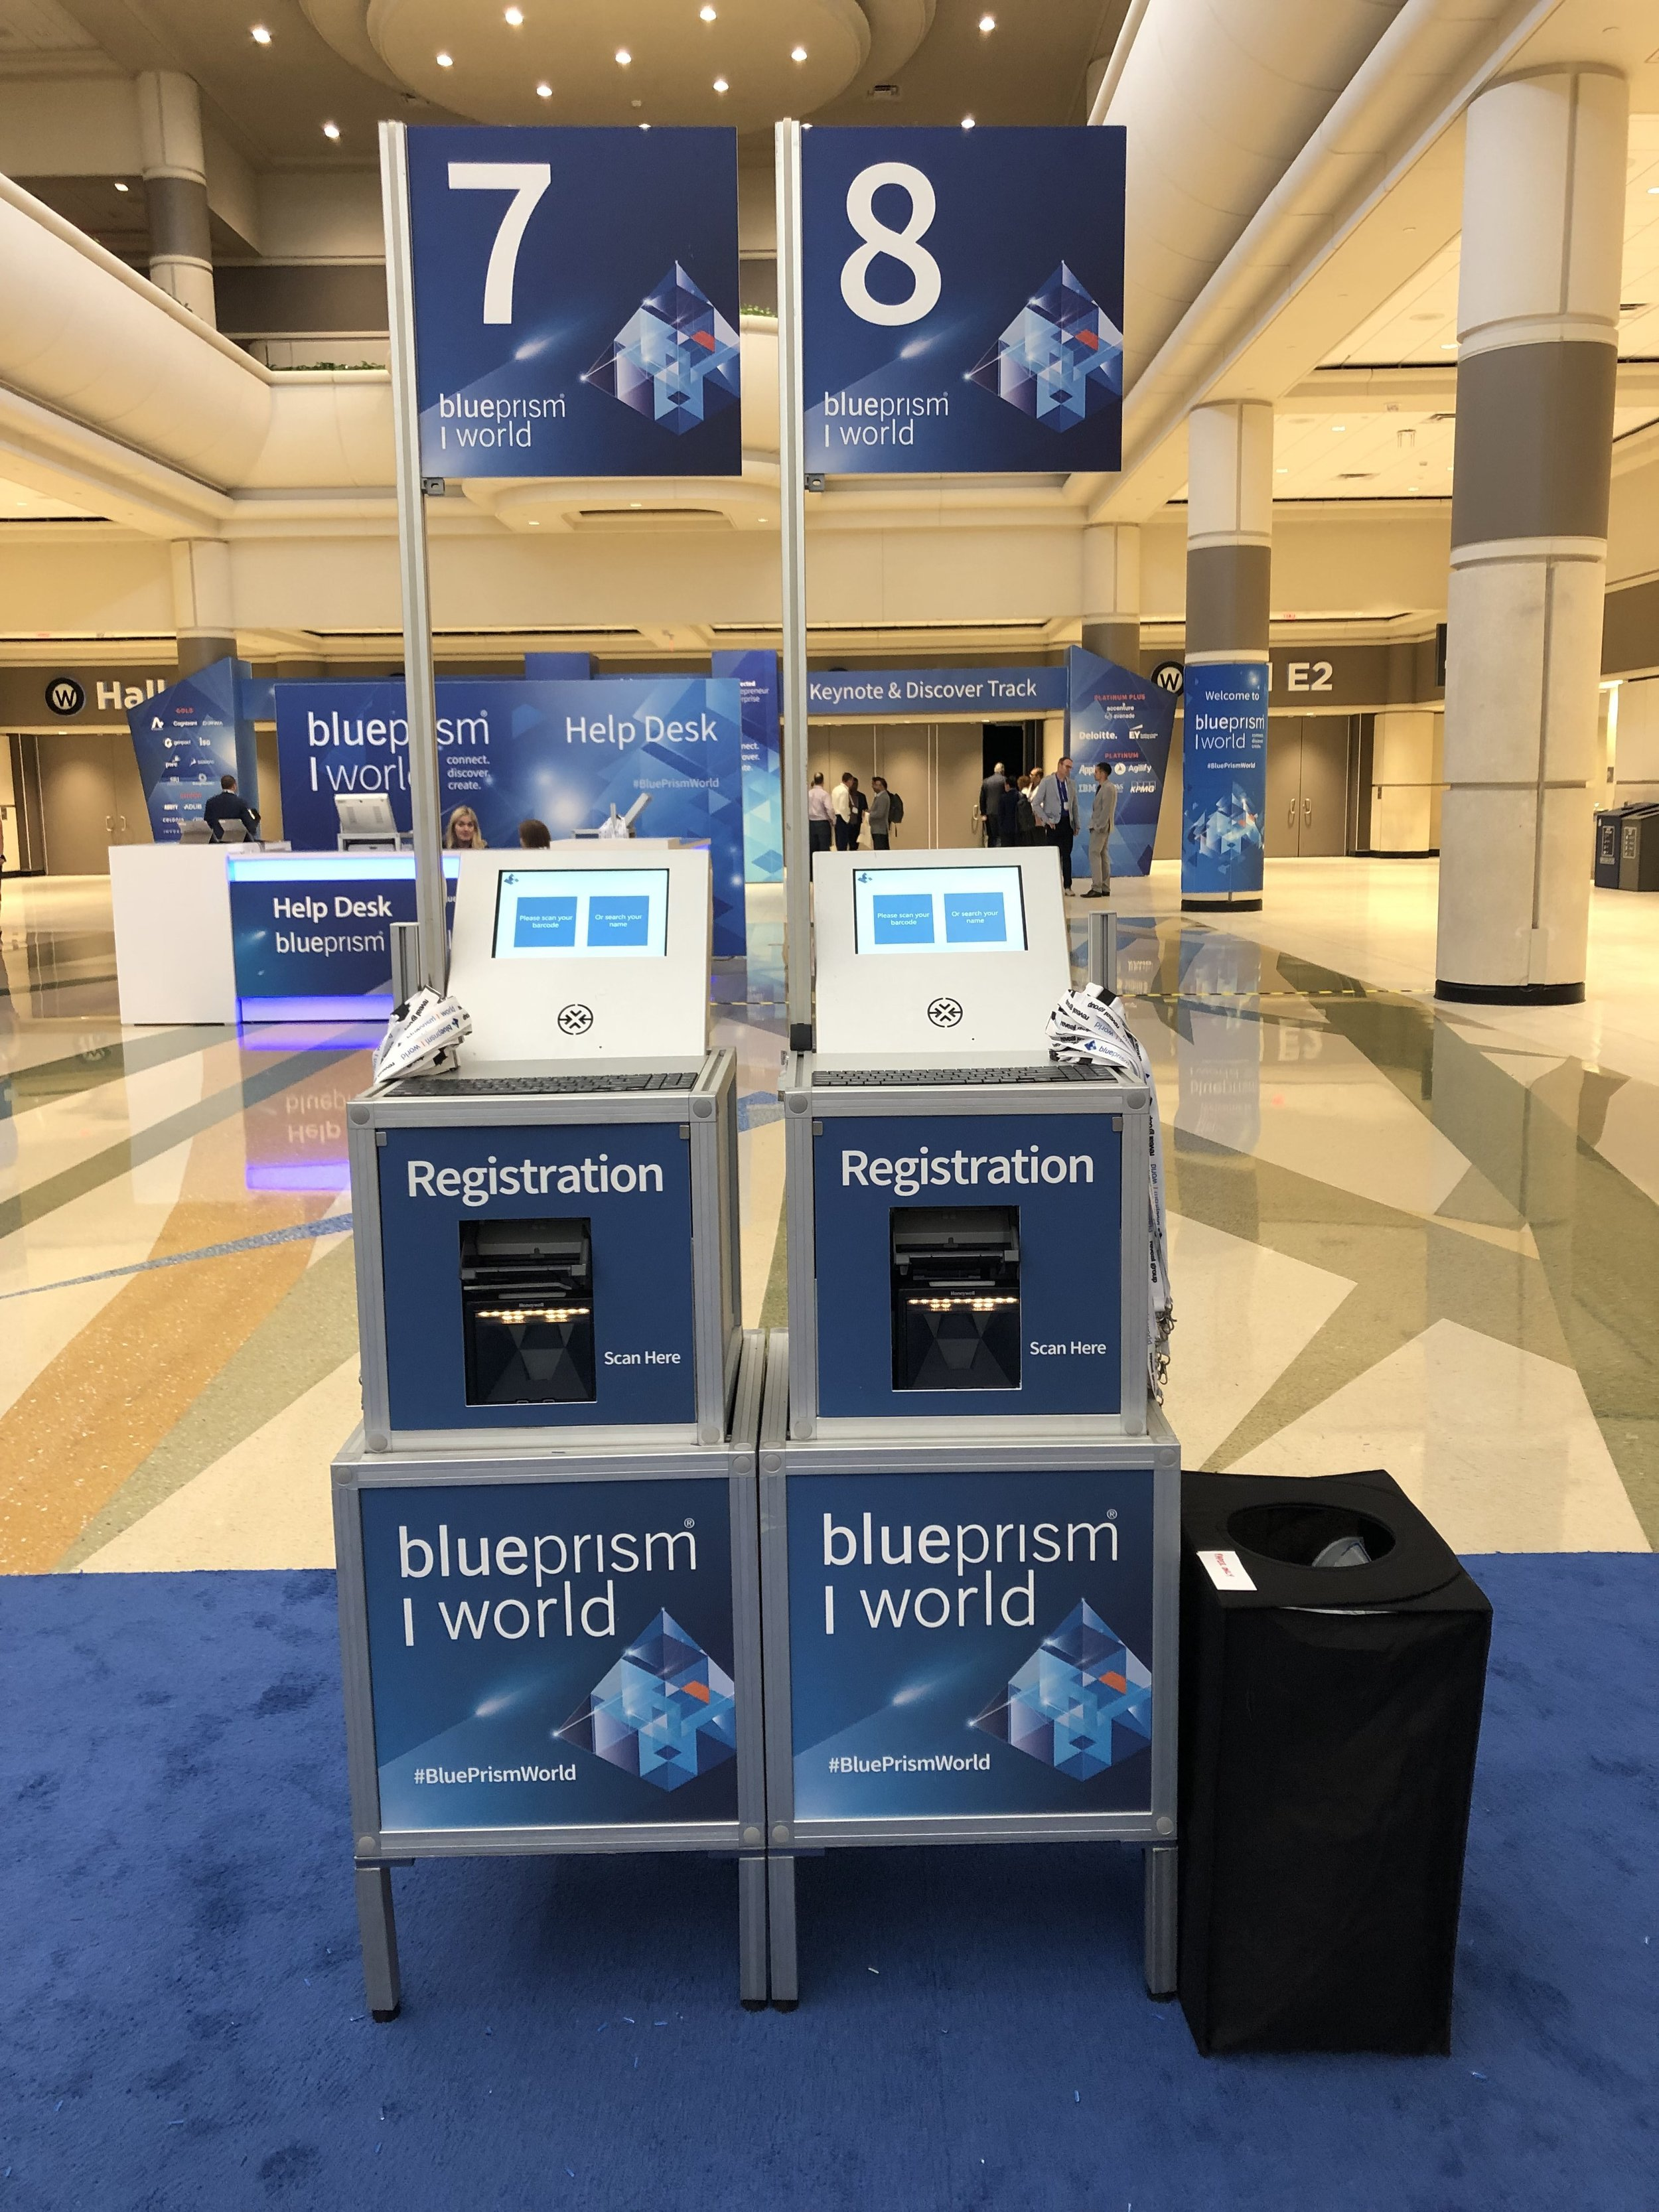 The event organizer decided to have fully branded kiosks at both events. .